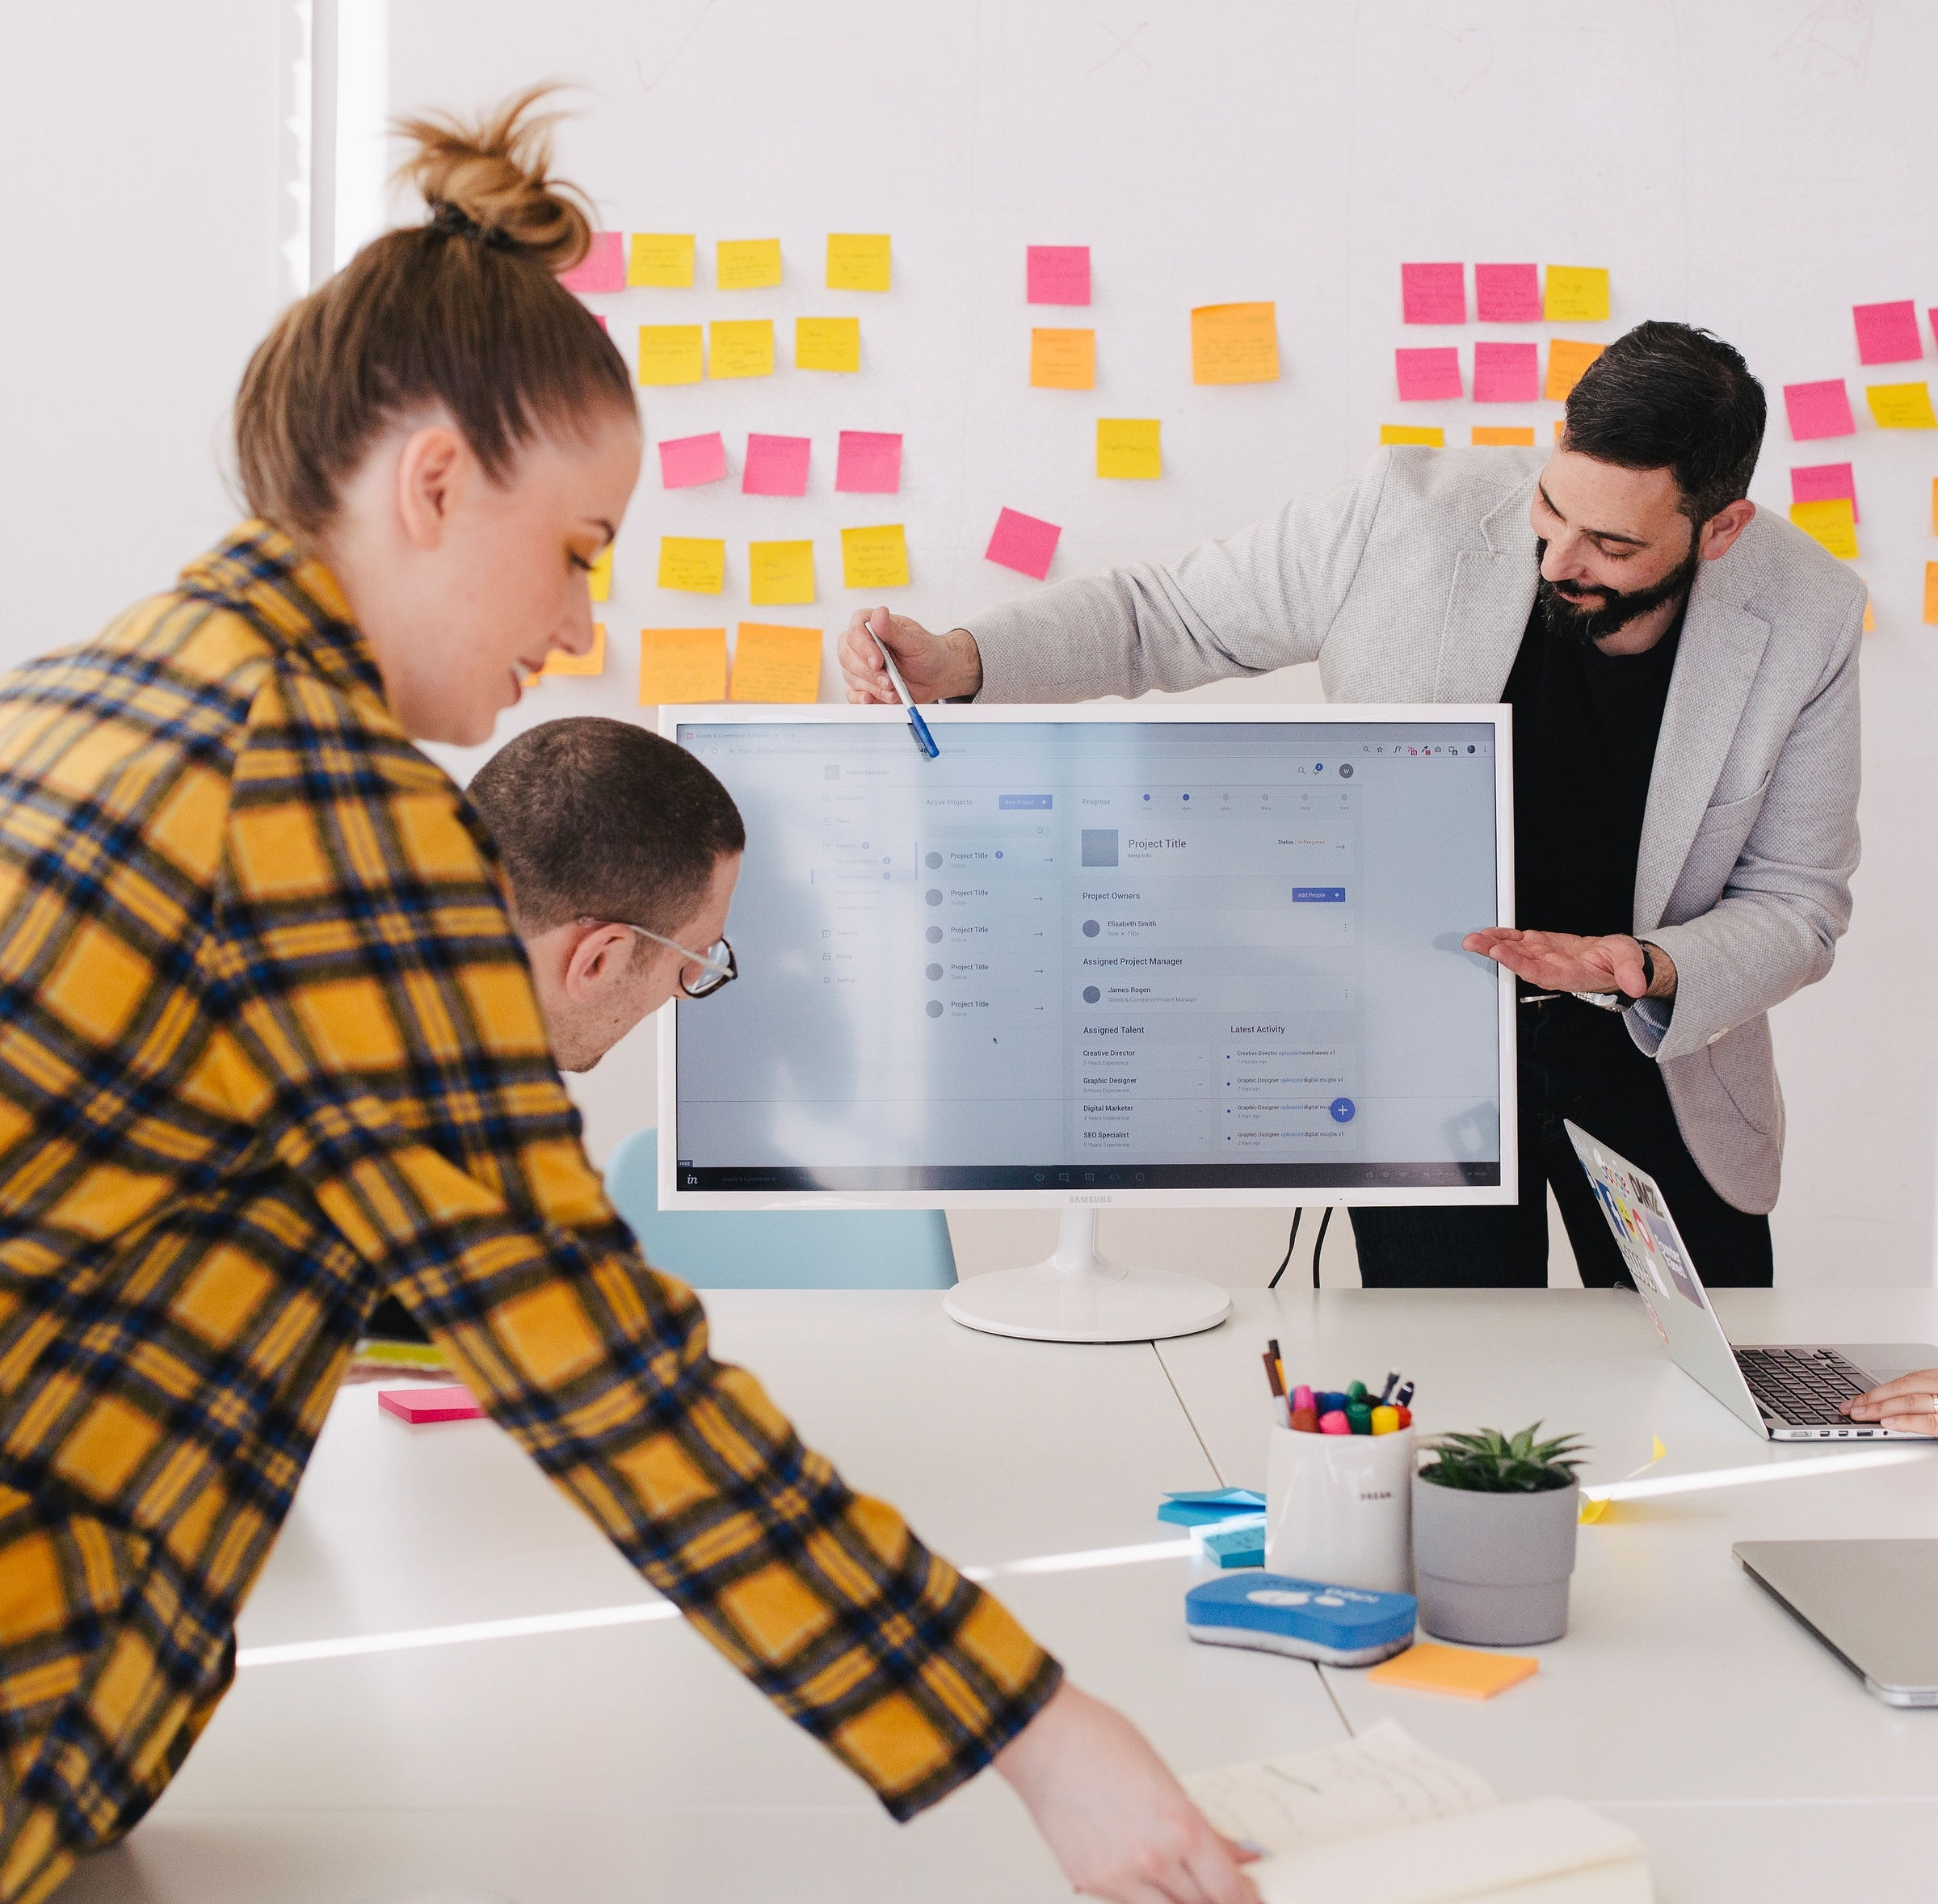 We work directly with your team to condense months of brainstorming, market research, and product design into a four-day sprint.